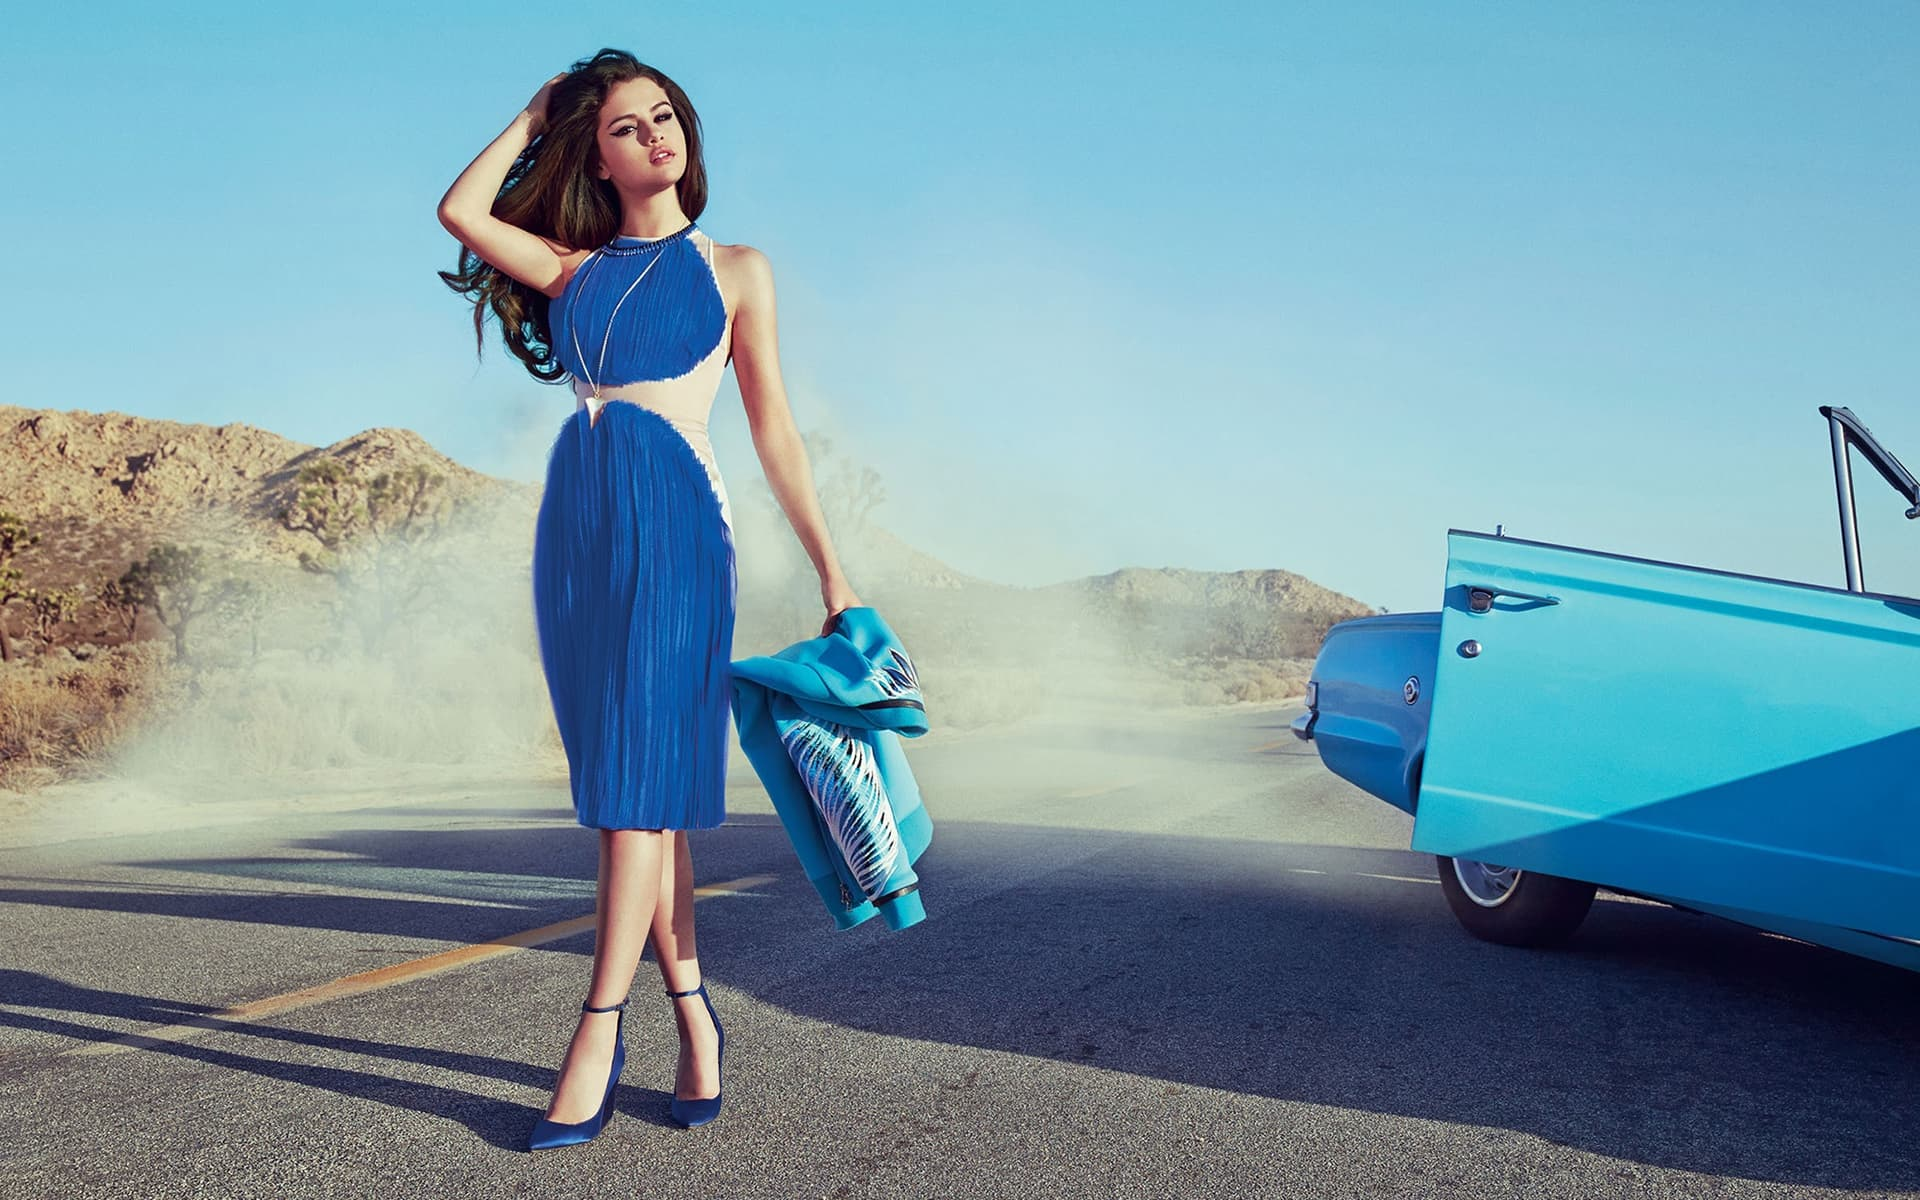 40 Selena Gomez Wallpapers High Quality Download